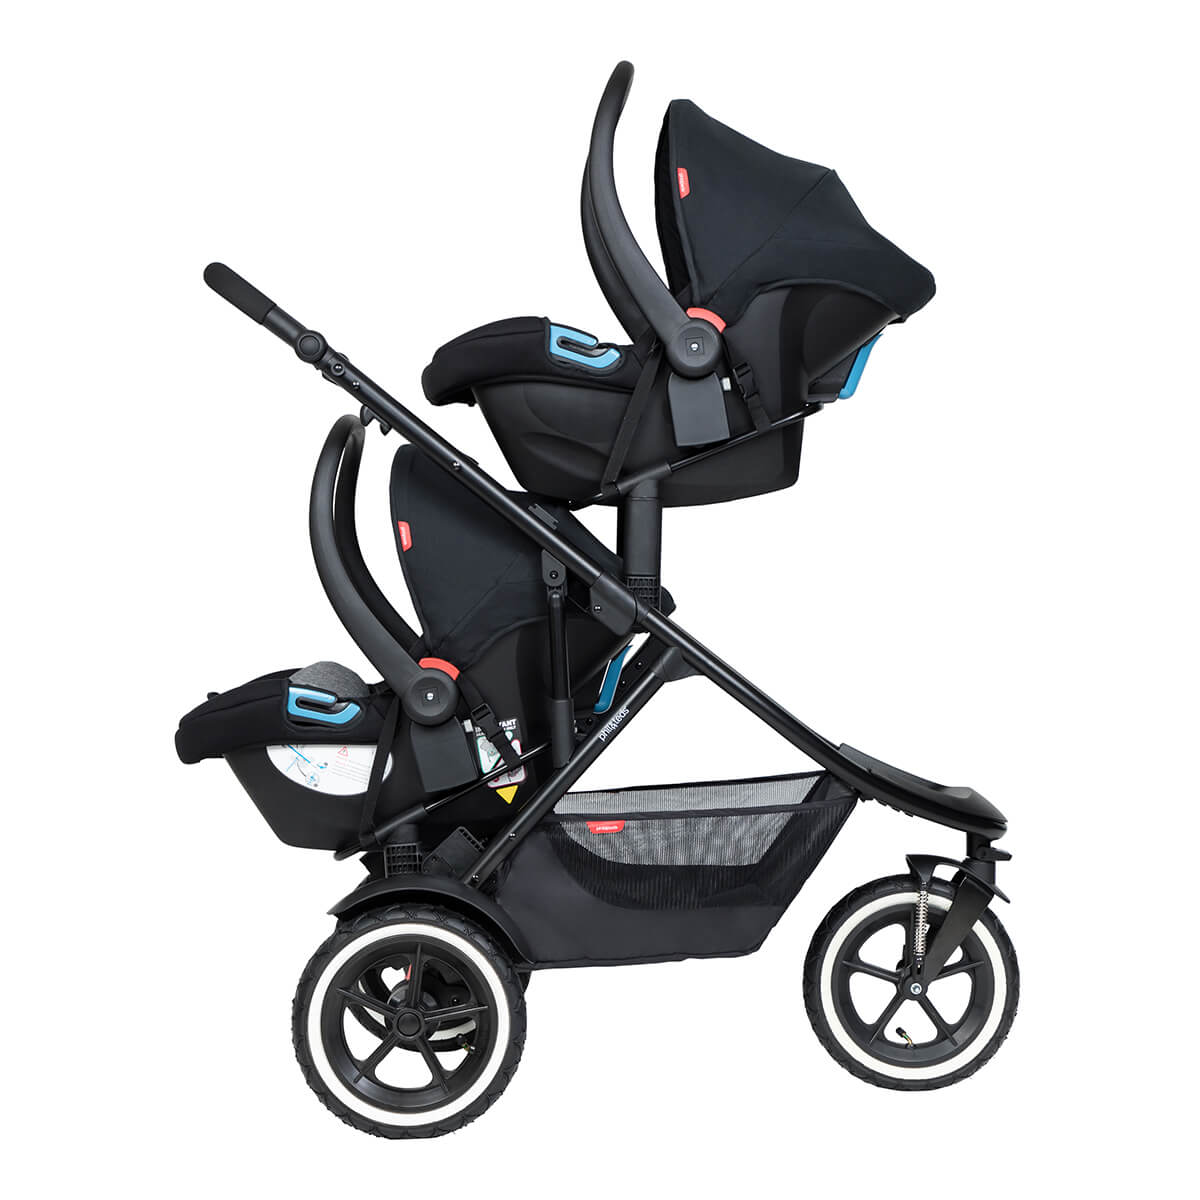 https://cdn.accentuate.io/4546157871209/19119322923113/philteds-sport-buggy-with-double-alpha-travel-system-v1625778311536.jpg?1200x1200